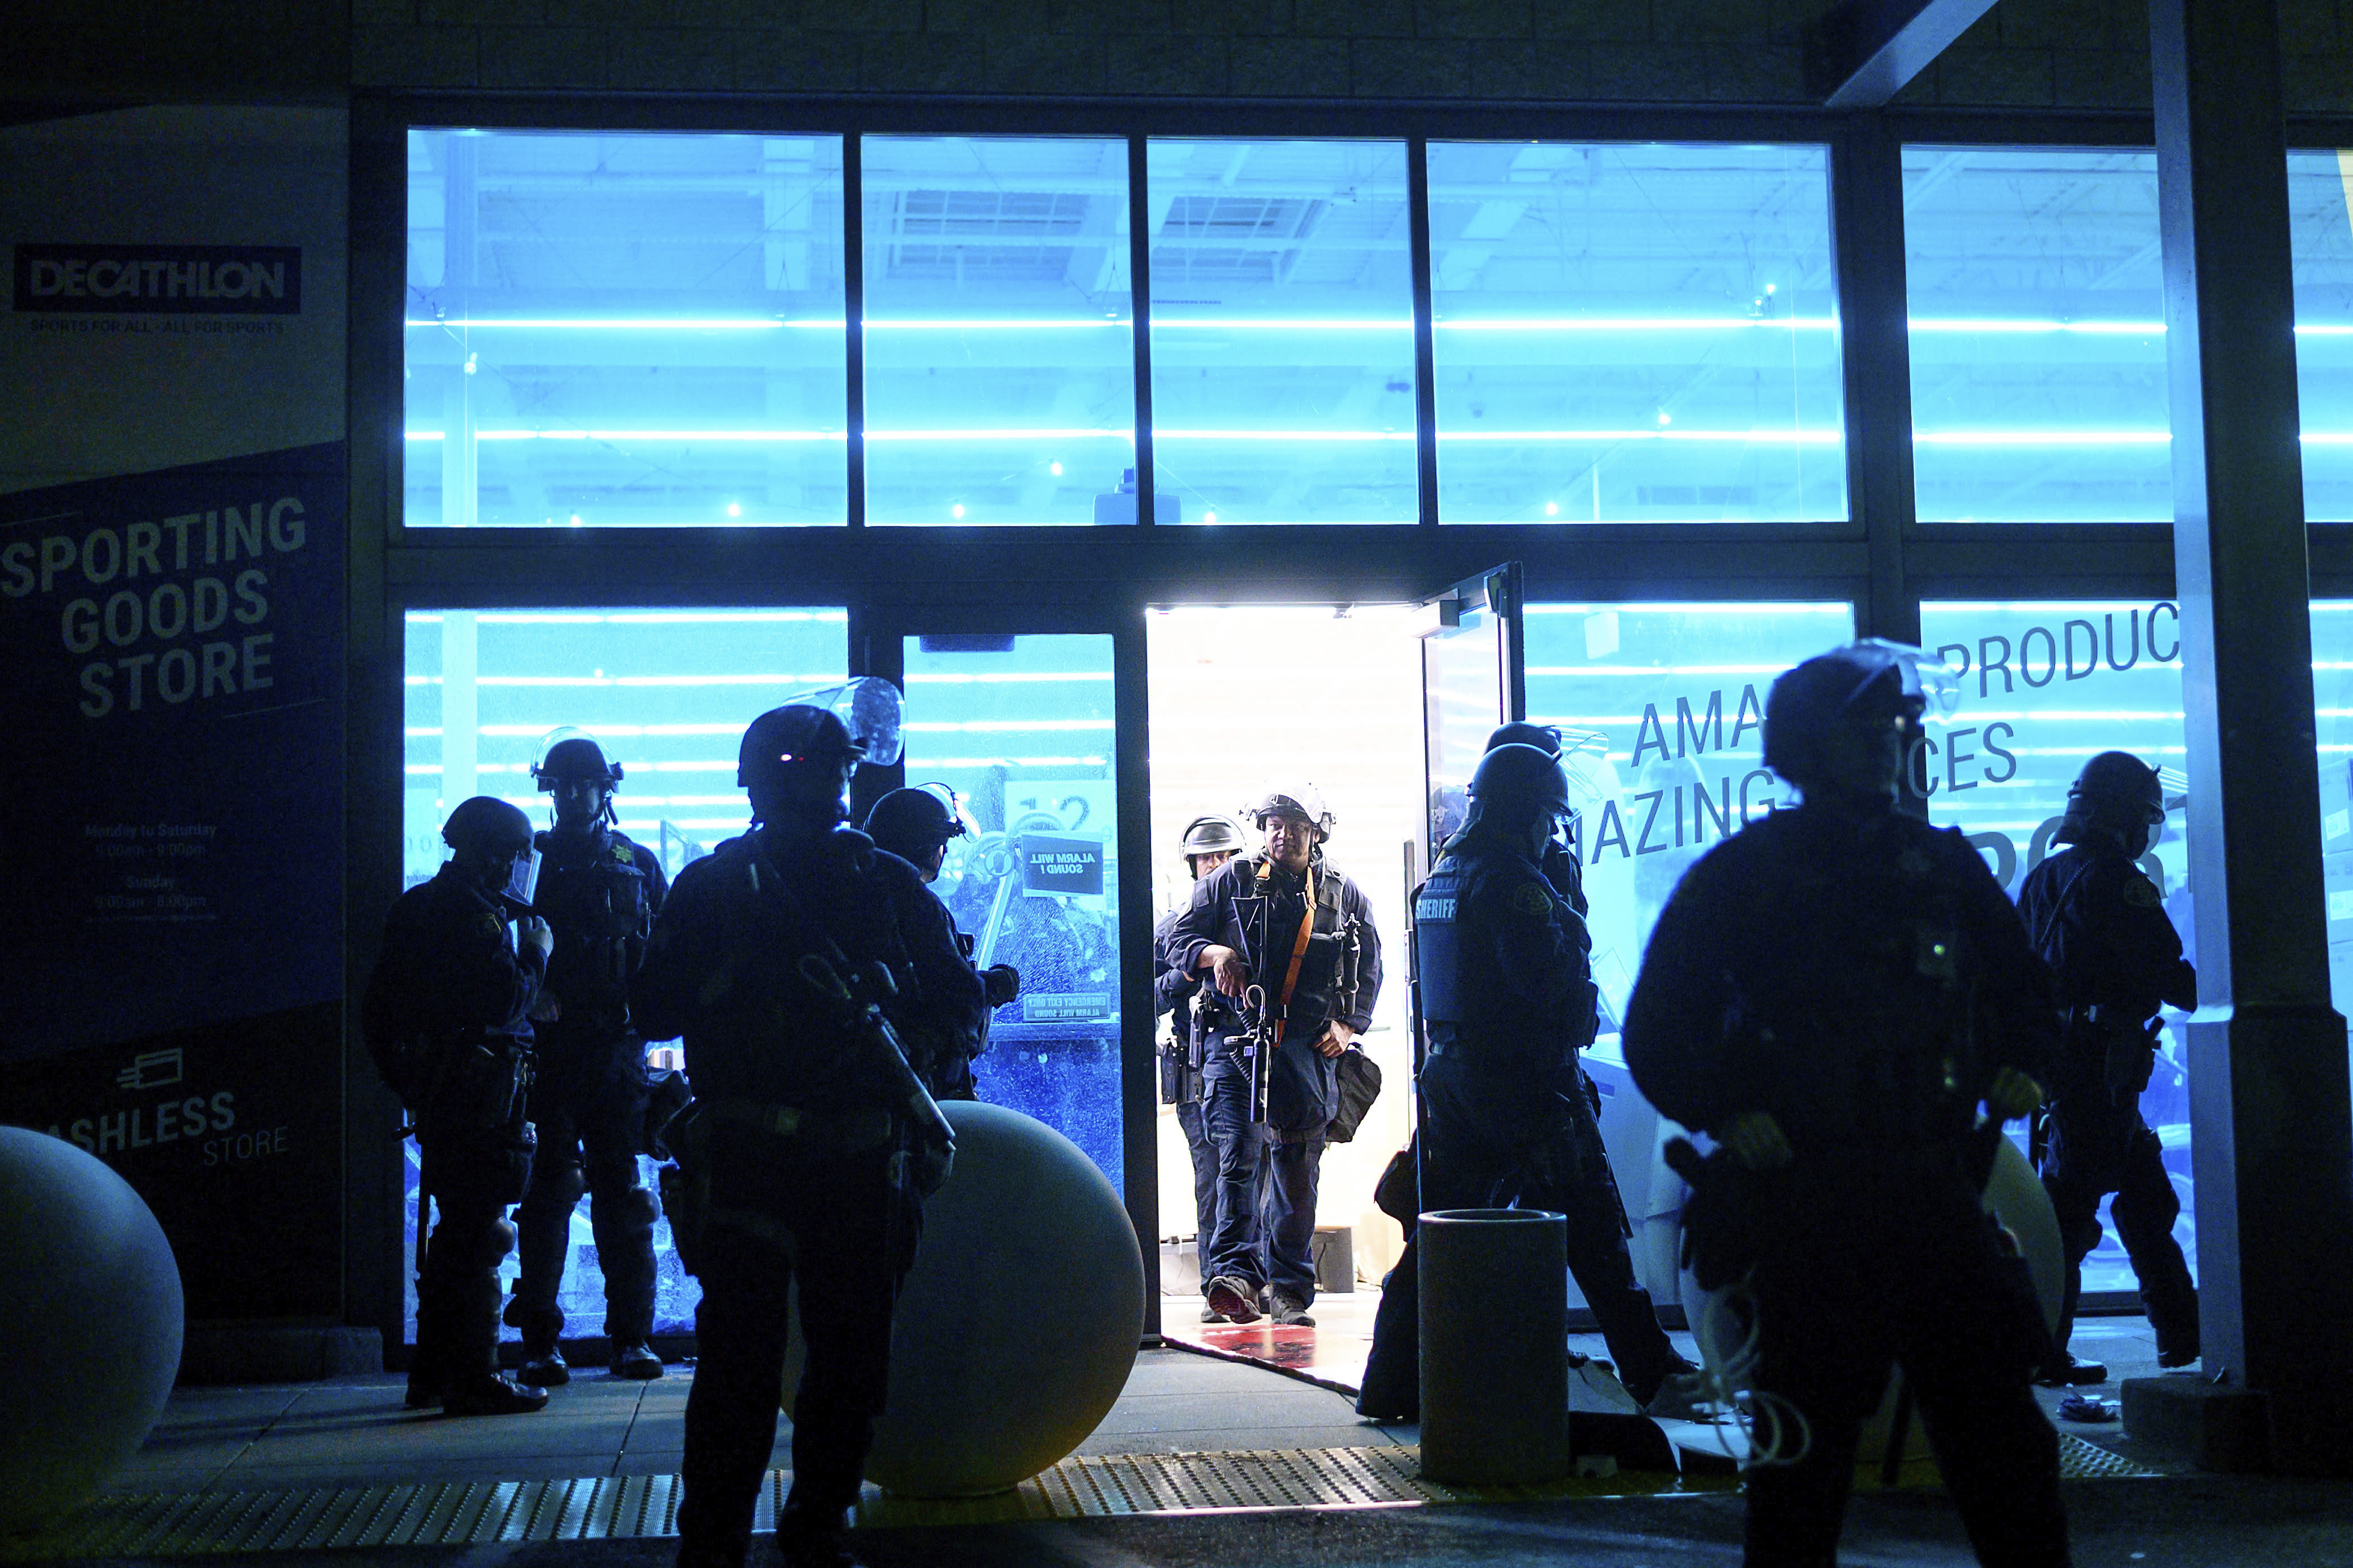 FILE - In this May 30, 2020, file photo, police officers leave a vandalized Decathlon sporting goods store in Emeryville, Calif. Police say many of the smash-and-grab thefts have been carried out by caravans of well-coordinated criminals that have coincided with or followed protests over the death of George Floyd, who was killed by a Minneapolis police officer who pressed his knee into Floyd's neck. (AP Photo/Noah Berger, File)